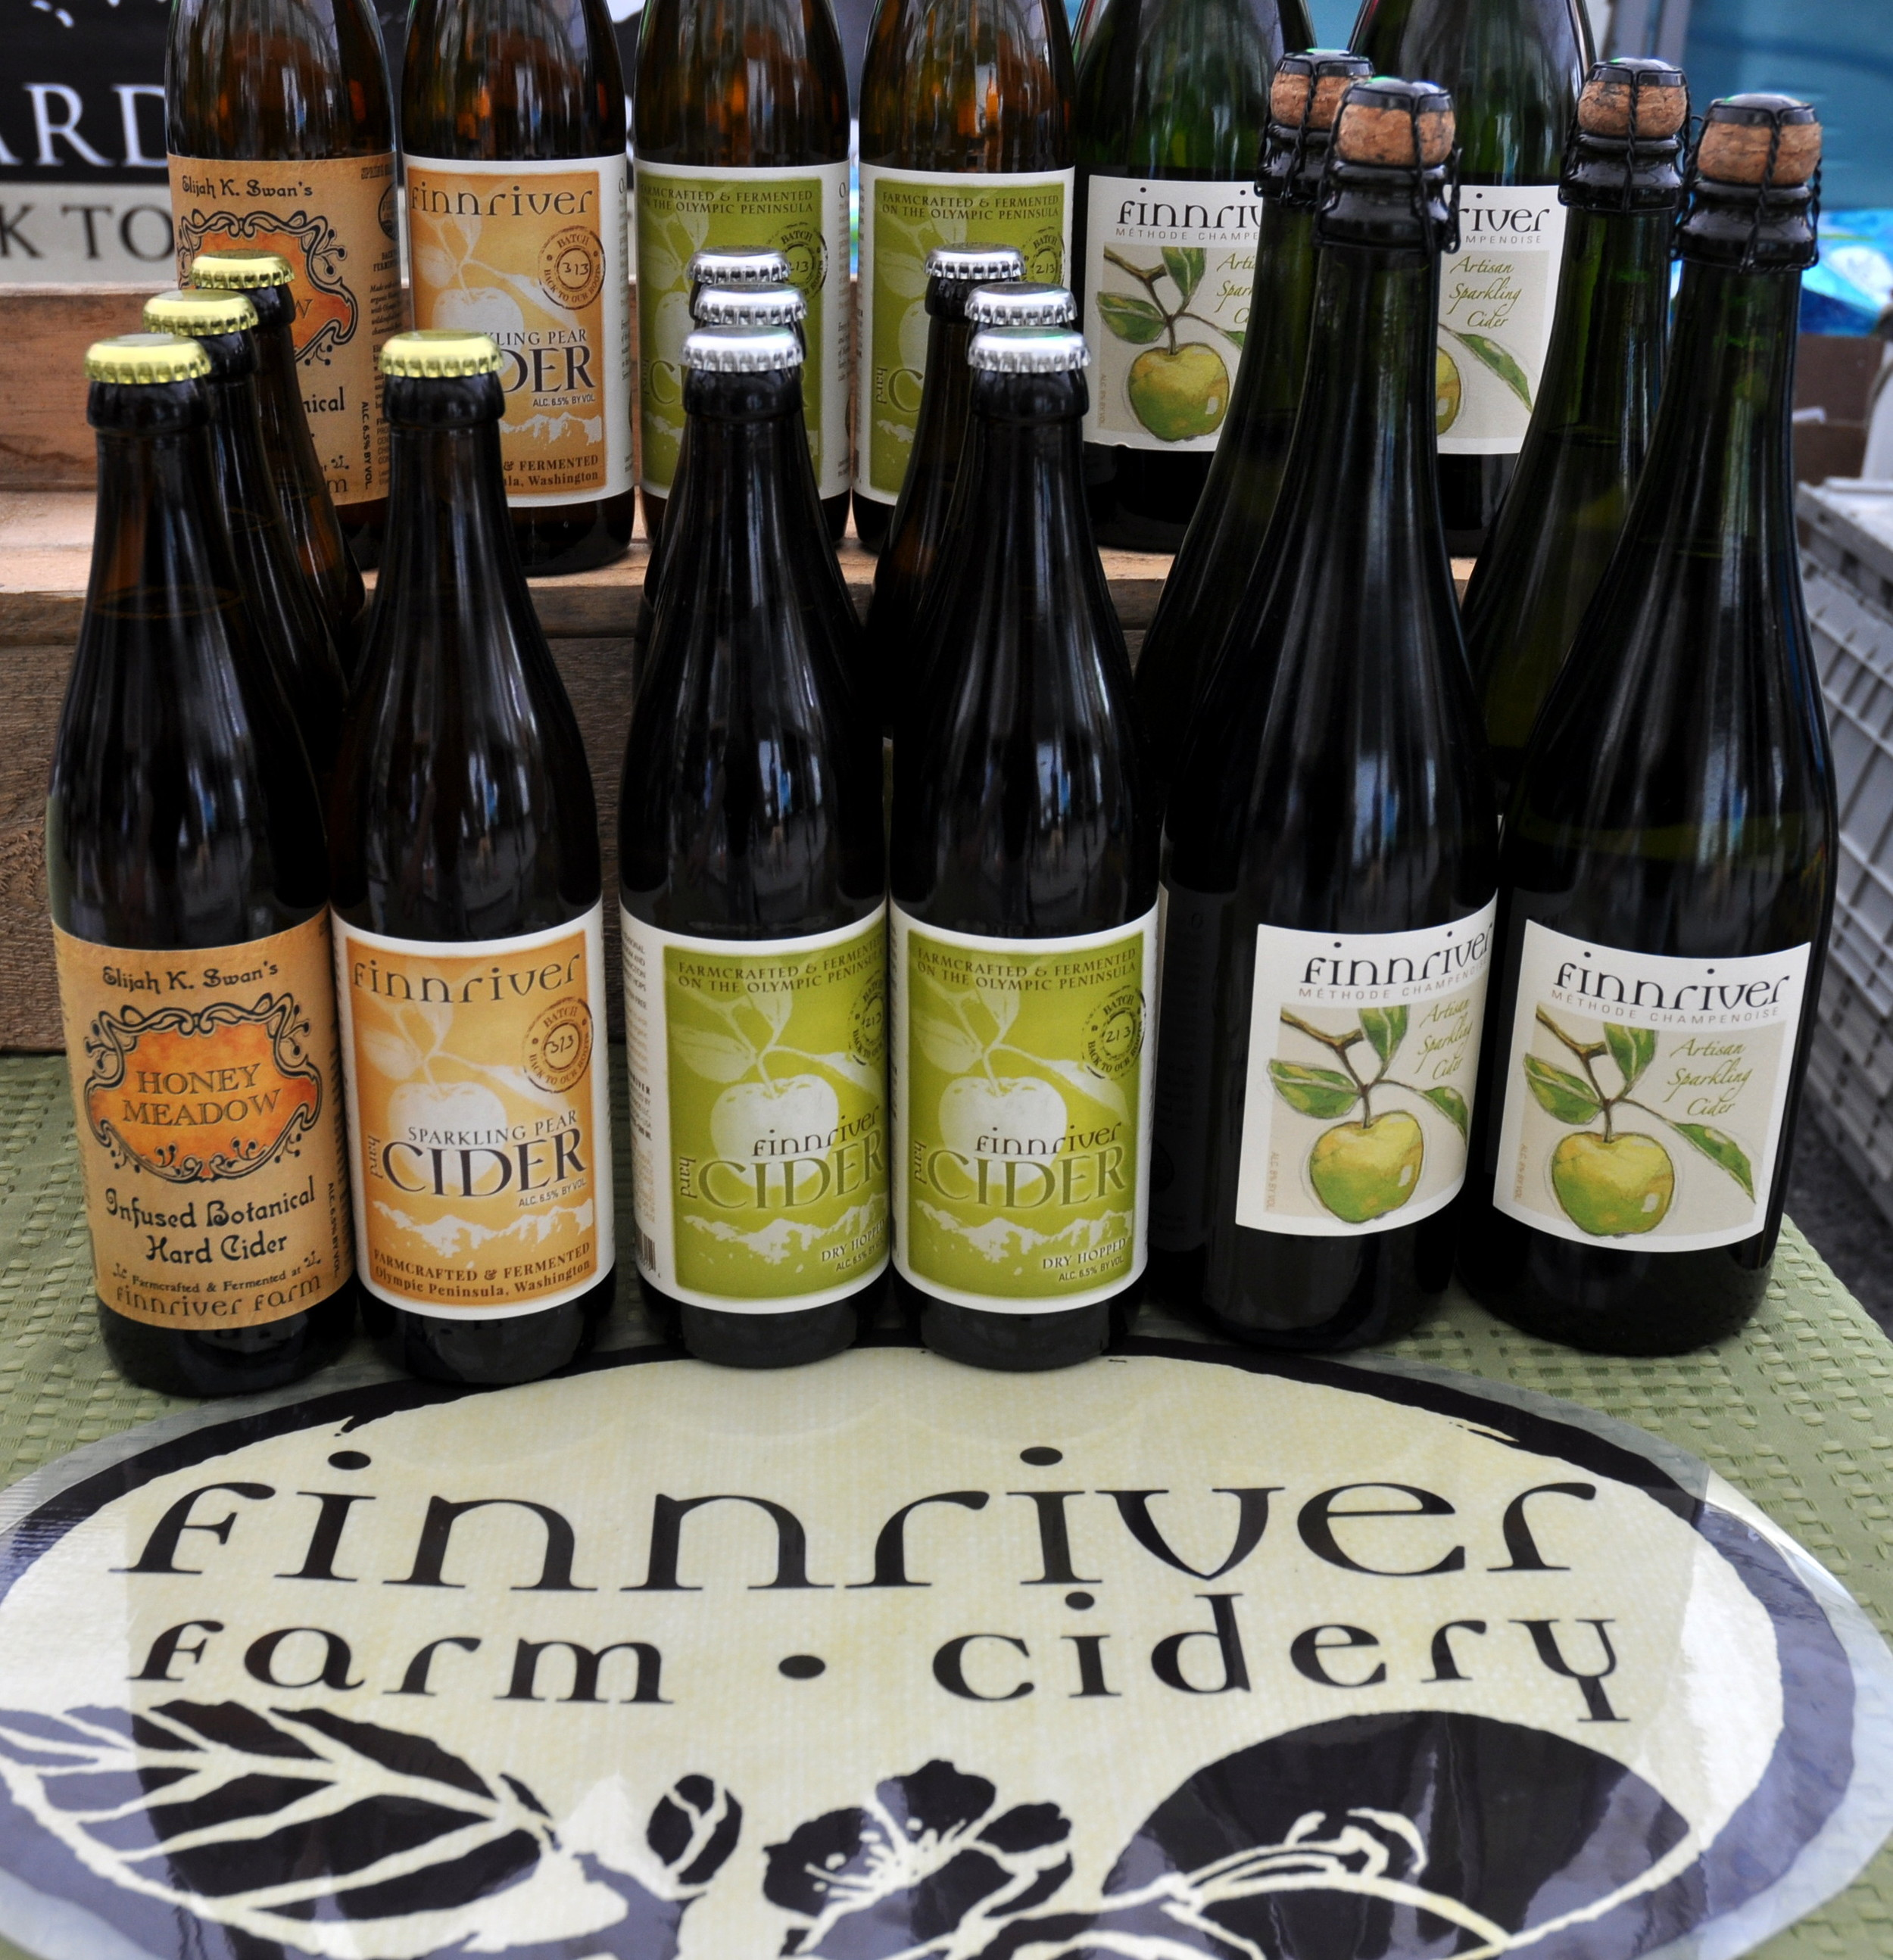 Some of the hard cider lineup at Finnriver Farm & Cidery. Photo copyright 2013 by Zachary D. Lyons.